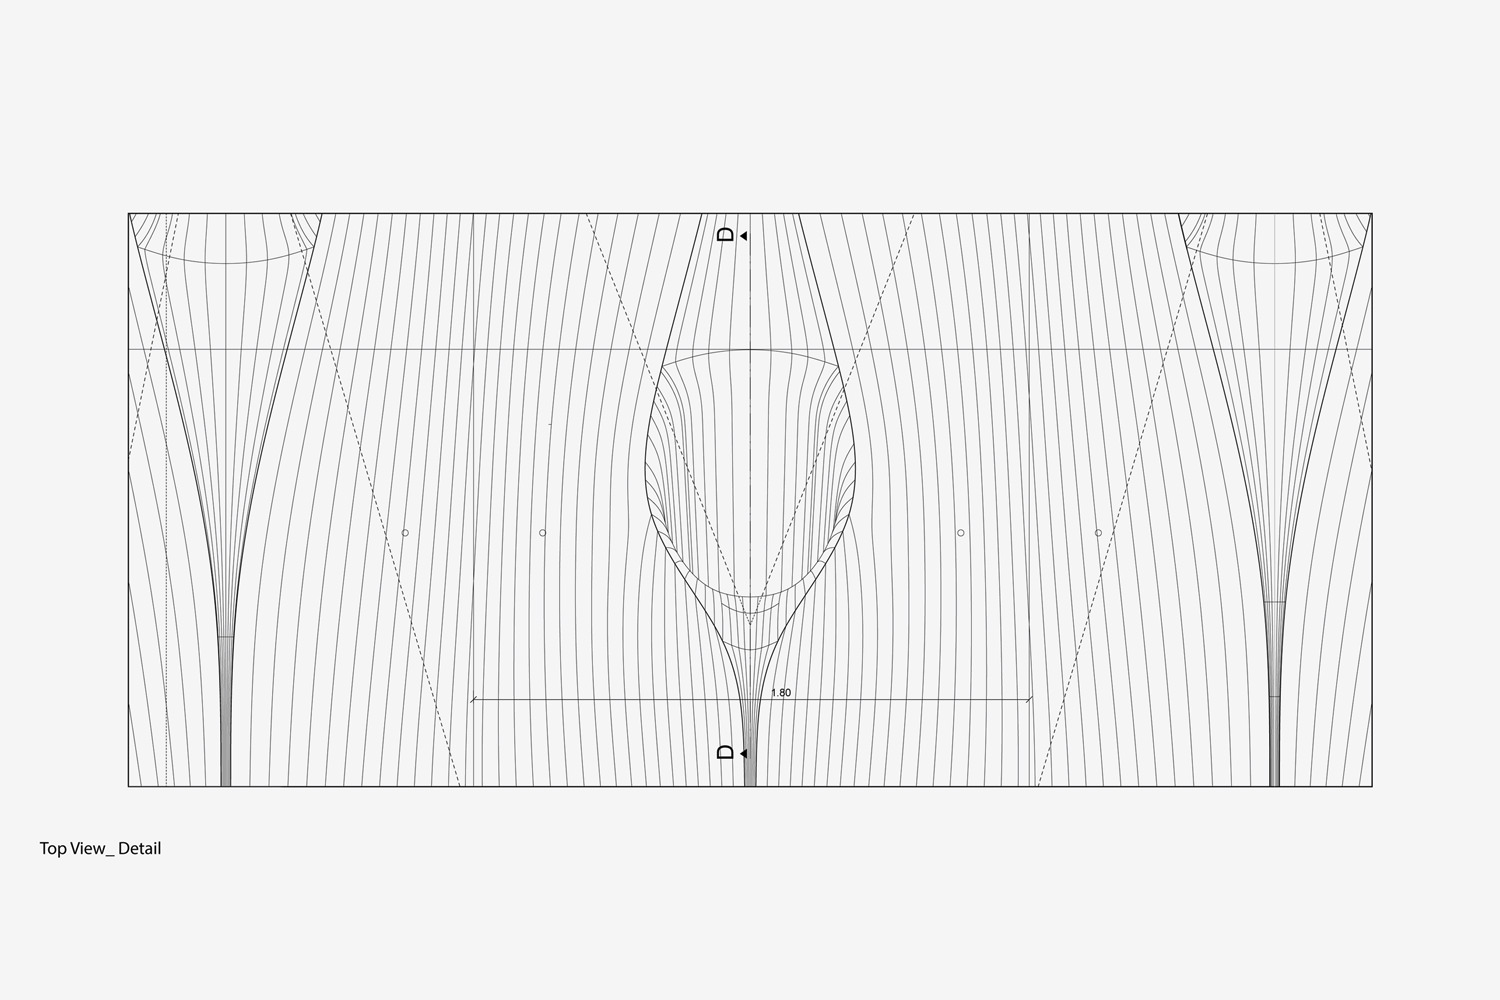 projector-ceiling-moh-architects-joerg-hugo-drawing9.jpg